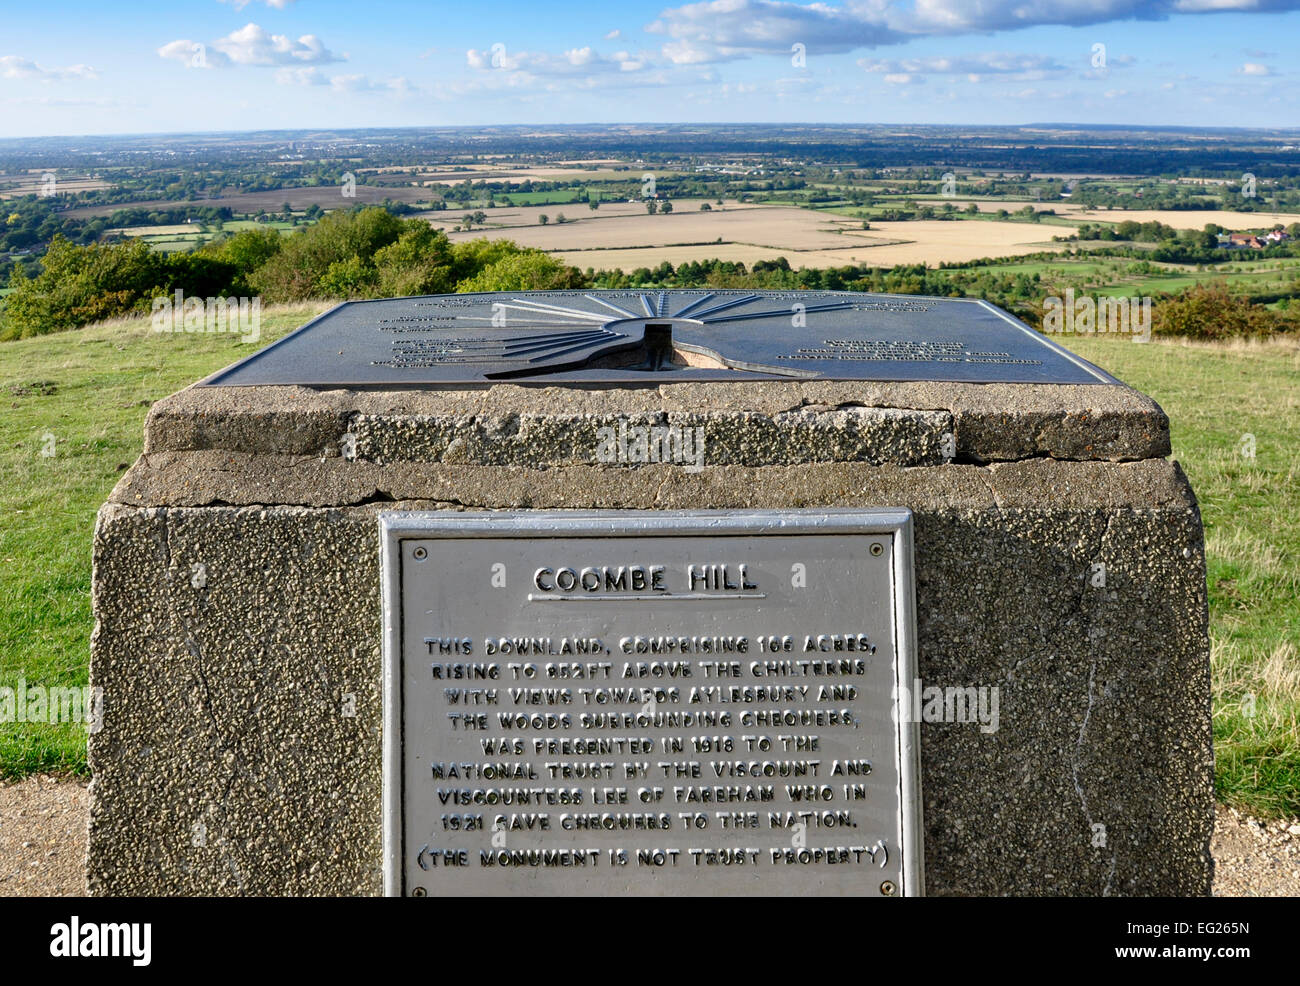 Bucks - Chiltern Hills - Coombe Hill - Aylesbury Plain seen over + beyond  stone plinth mounted distance/direction - Stock Image